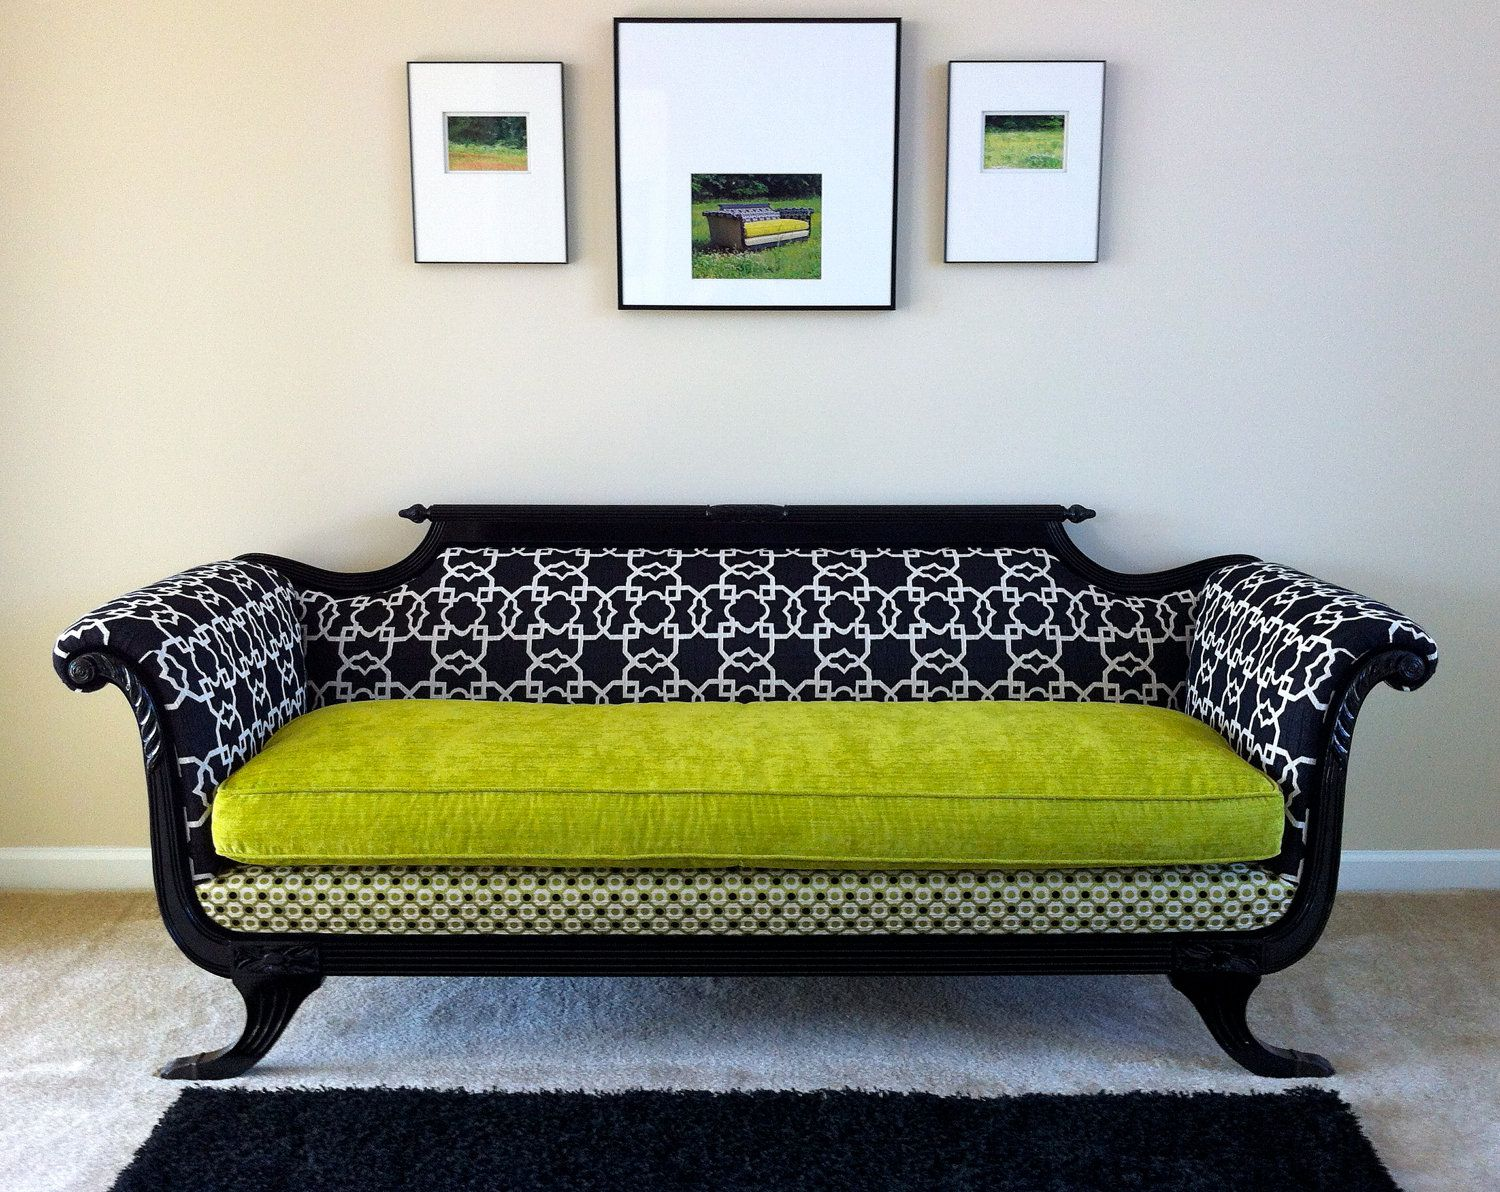 1930s Duncan Phyfe Sofa Redesigned For Modern Times In Shocking Chartreuse 2 700 00 Via Etsy